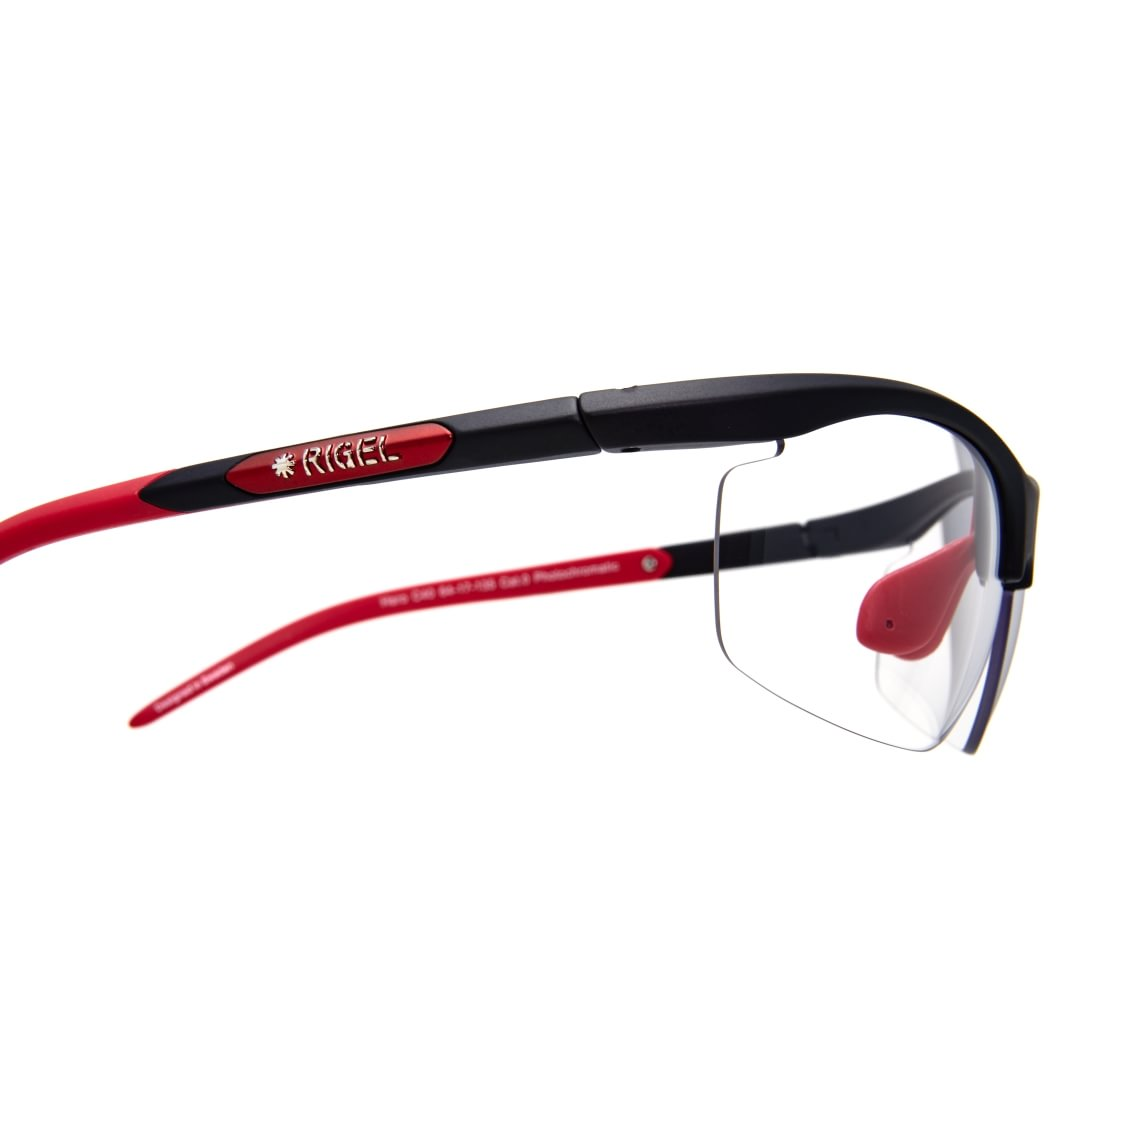 RIGEL Photochromic Hero C40 6417